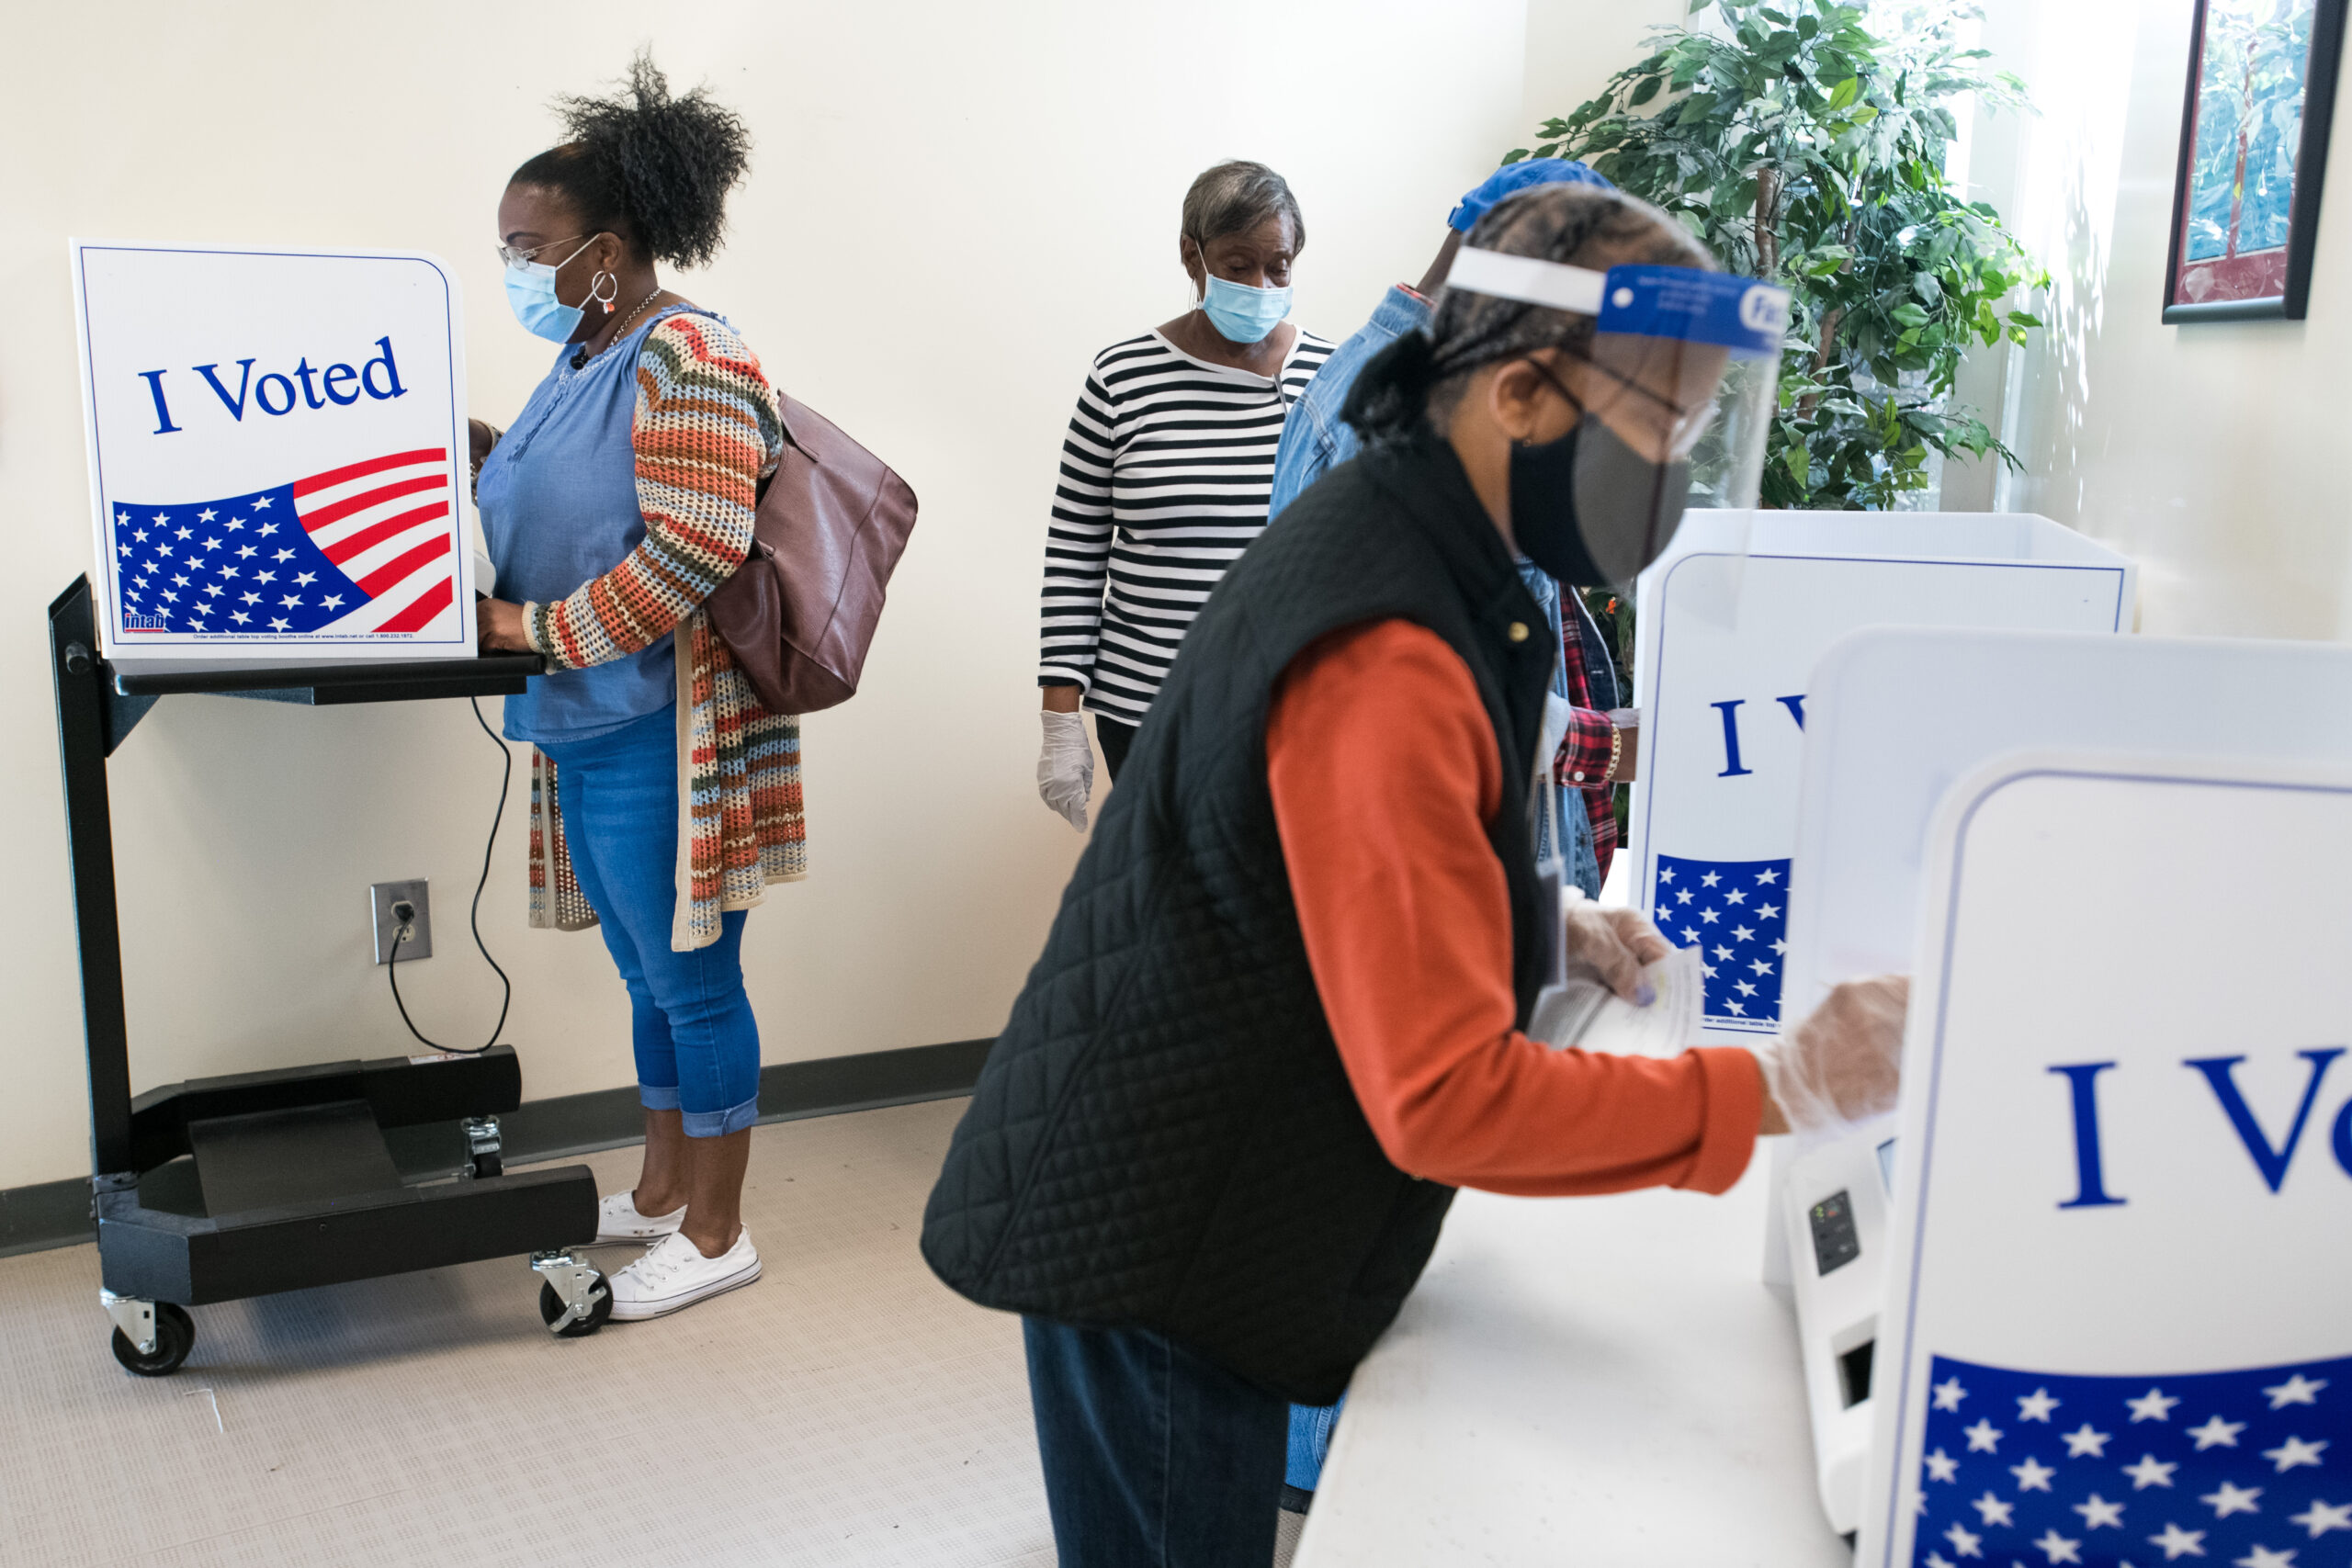 People cast votes at the Richland County Voter Registration and Elections Office on the second day of in-person absentee and early voting on Oct. 6, 2020 in Columbia, South Carolina. Credit: Sean Rayford/Getty Images